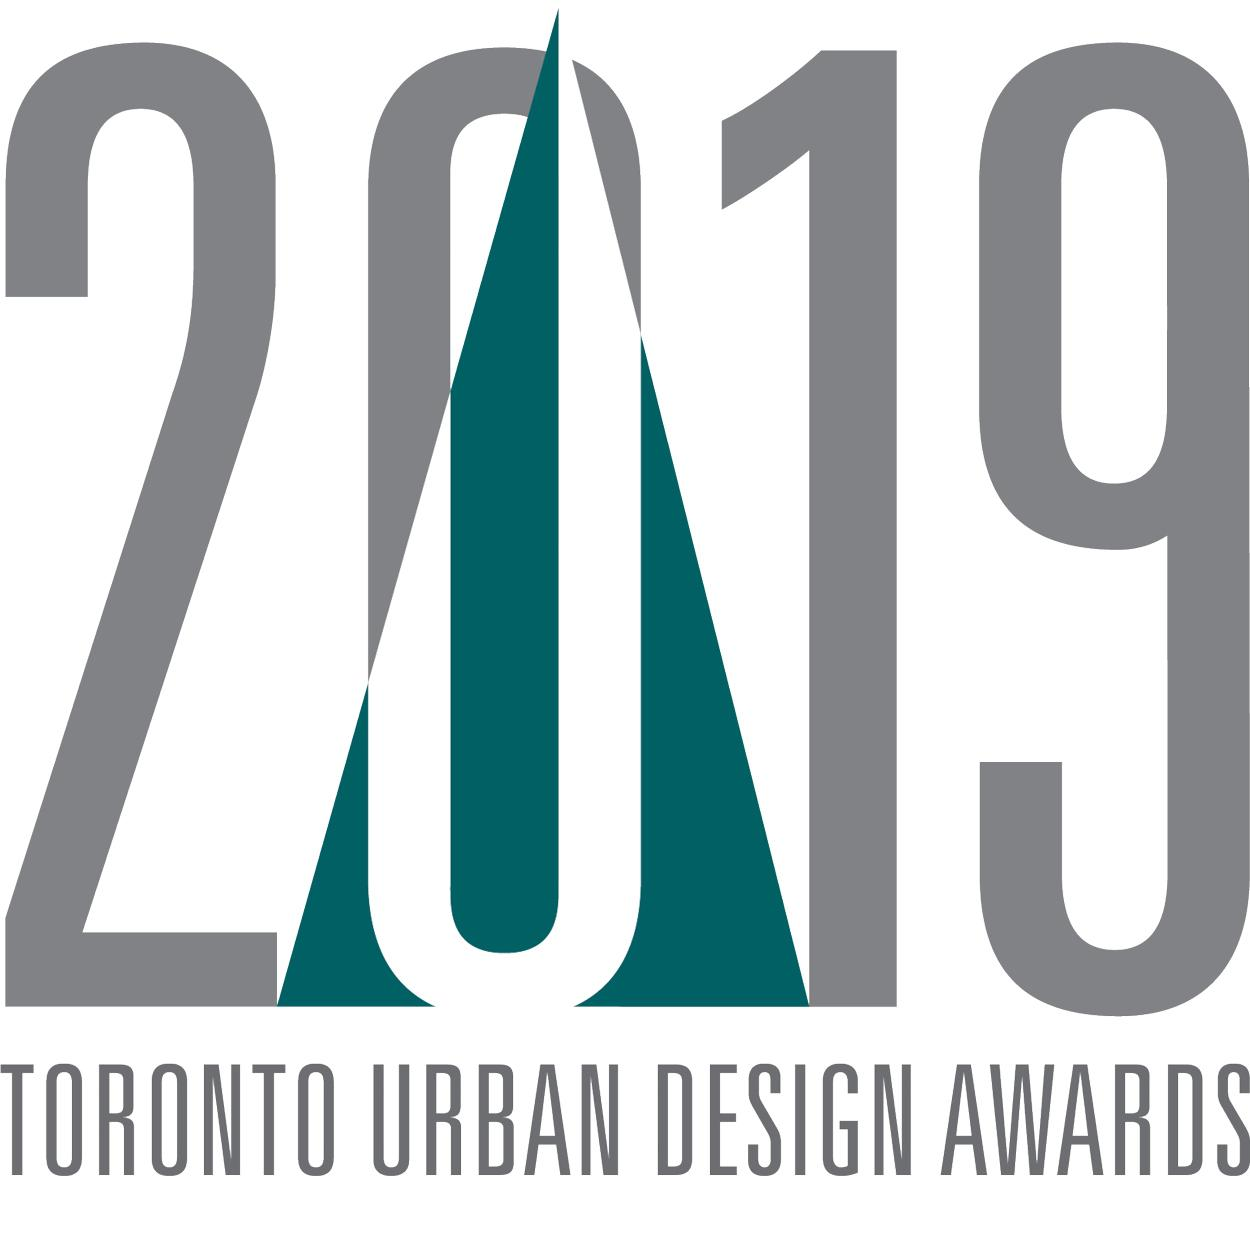 Toronto Urban Design Awards 2019 logo